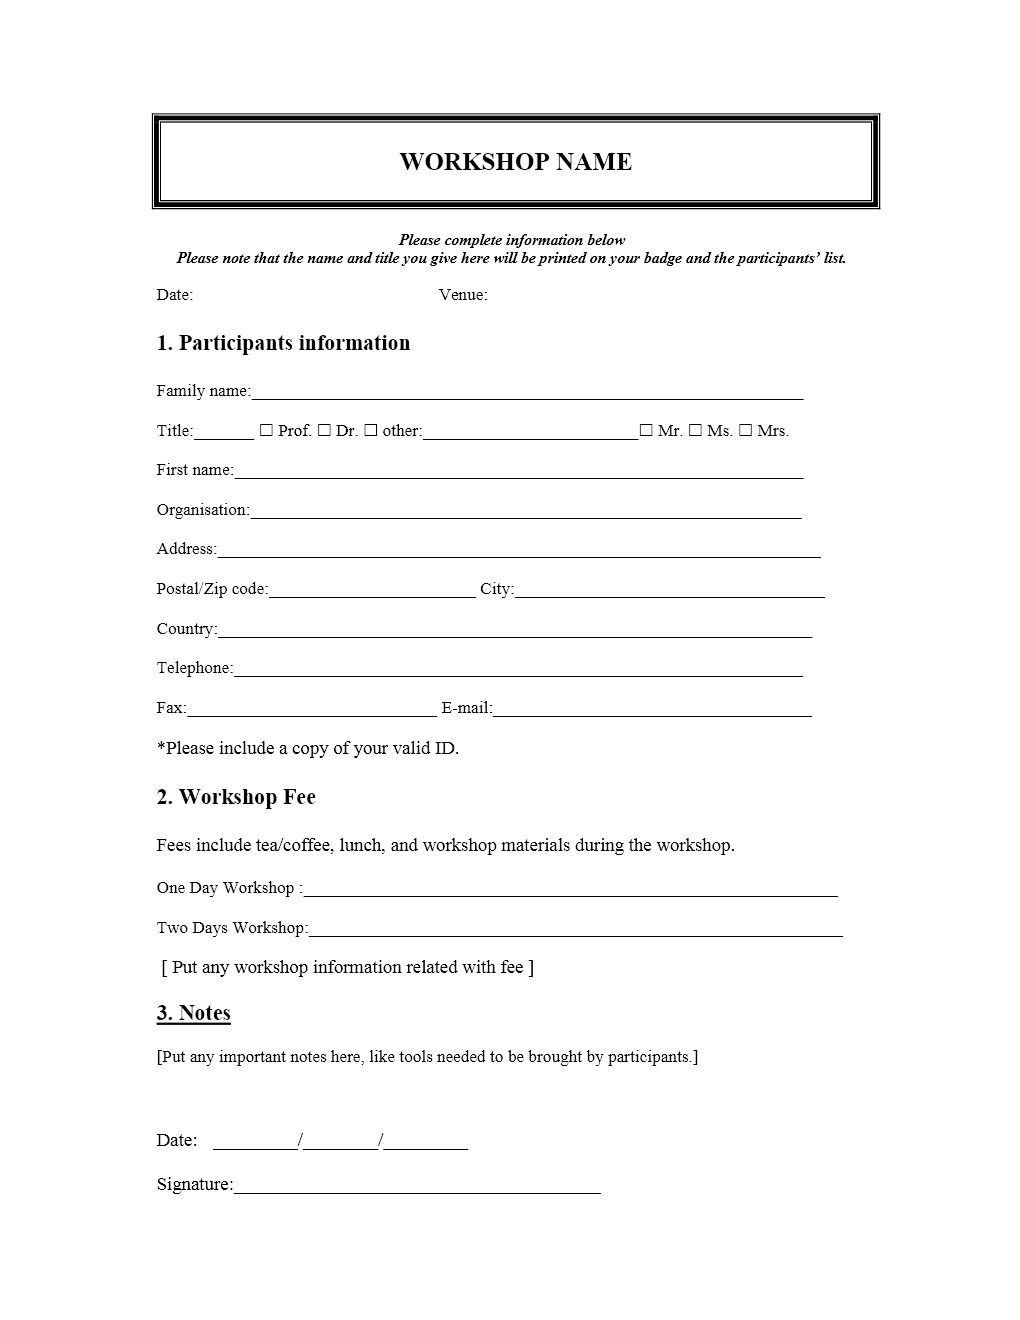 free registration form template - workshop registration form